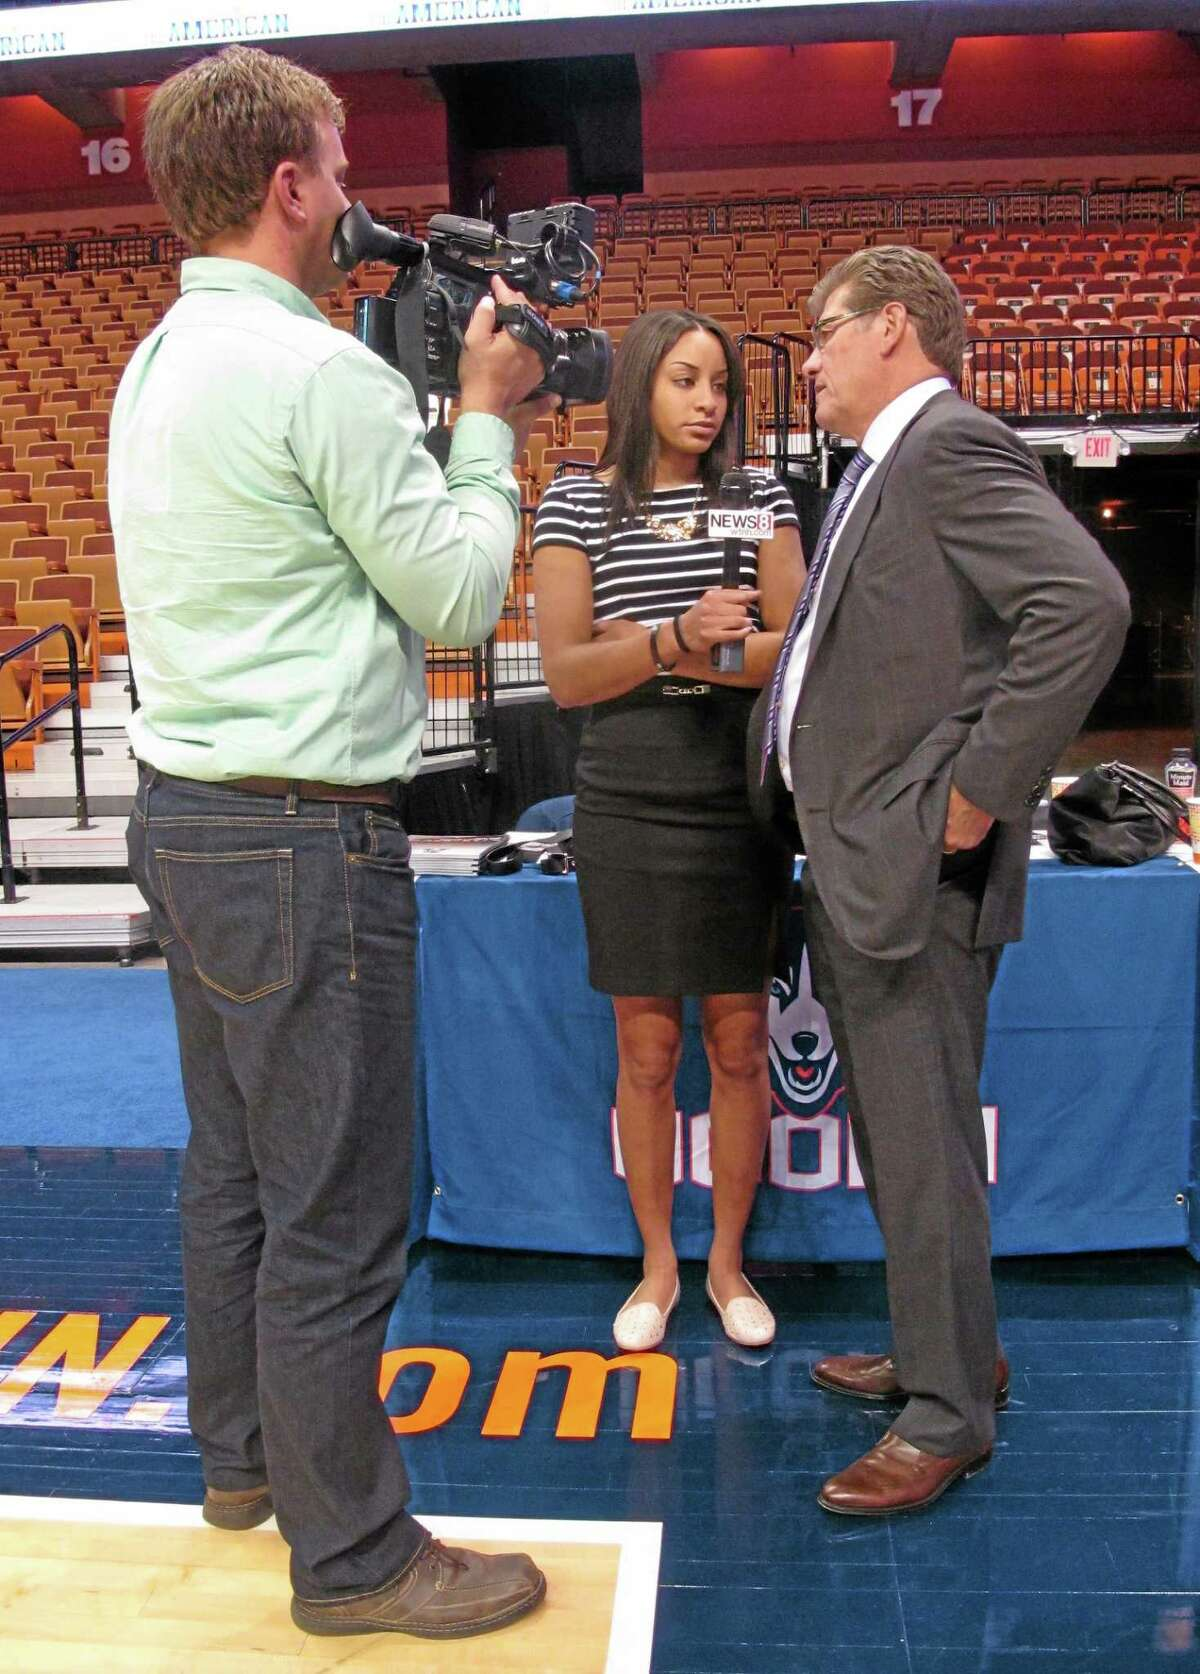 UConn guard Bria Hartley, center, plays interviewer with coach Geno Auriemma, right, during the American Athletic Conference's women's basketball media day on Monday at the Mohegan Sun Arena in Uncasville, Conn.